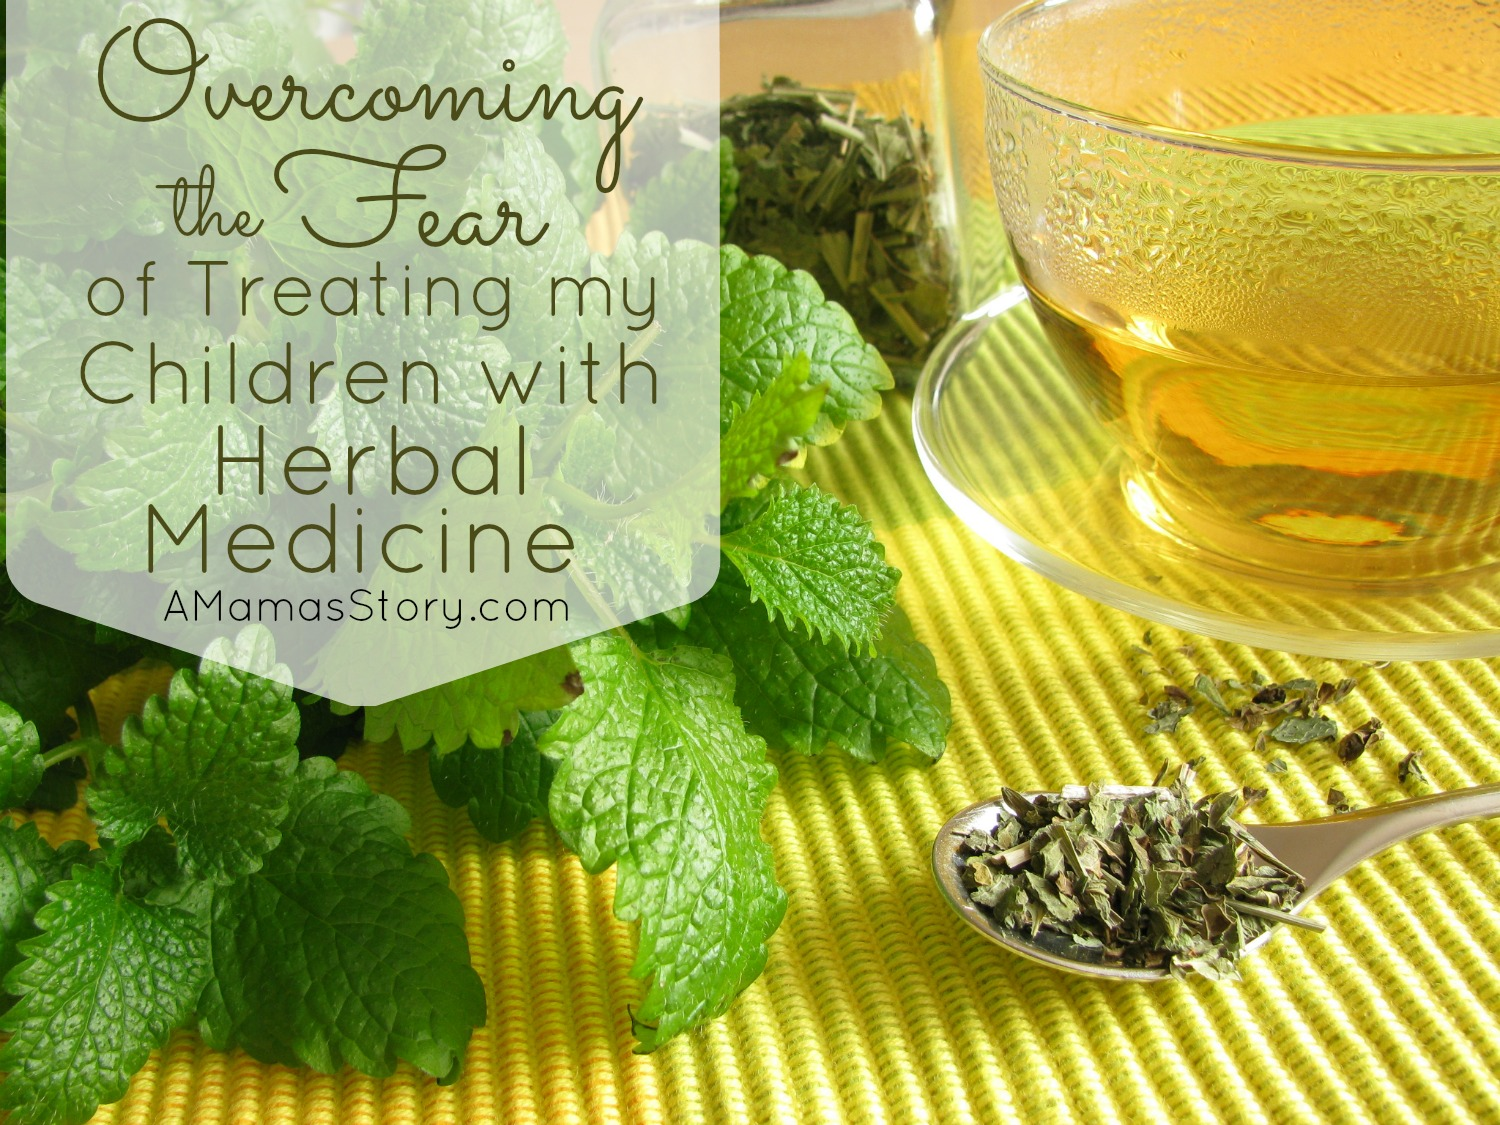 Overcoming the Fear of Treating My Children With Herbal Medicine